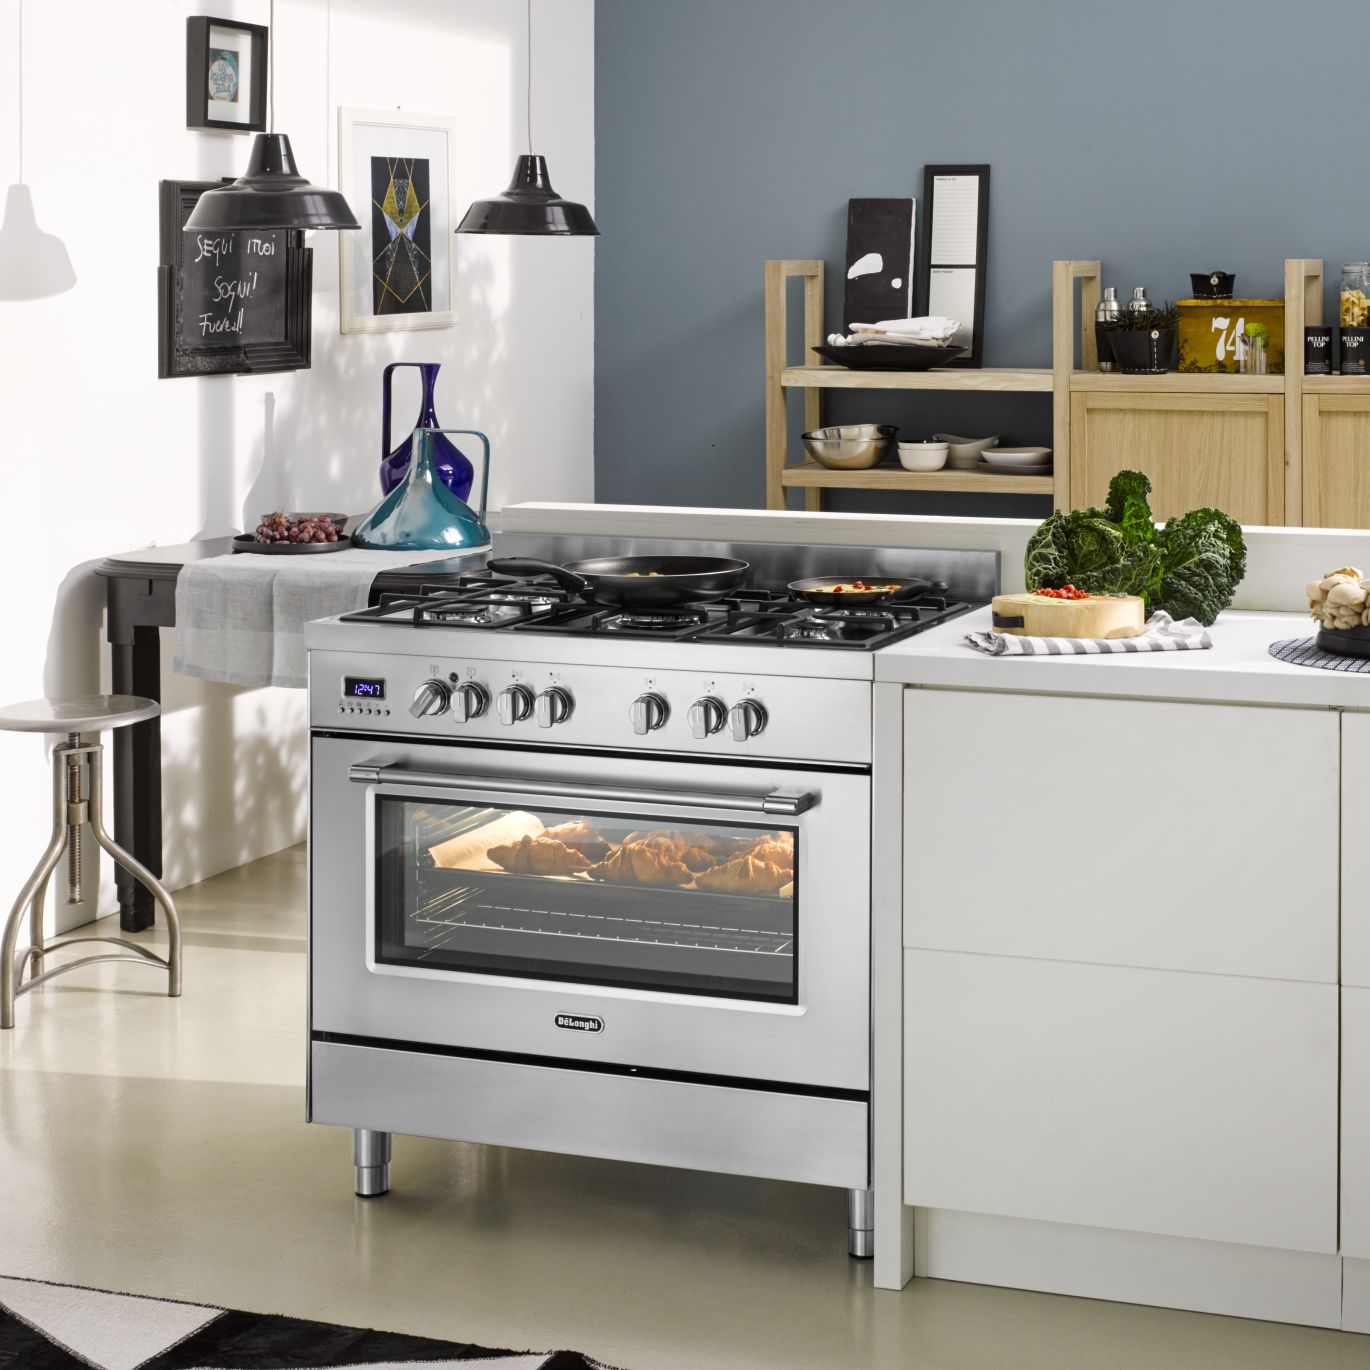 Ovens & Cooking